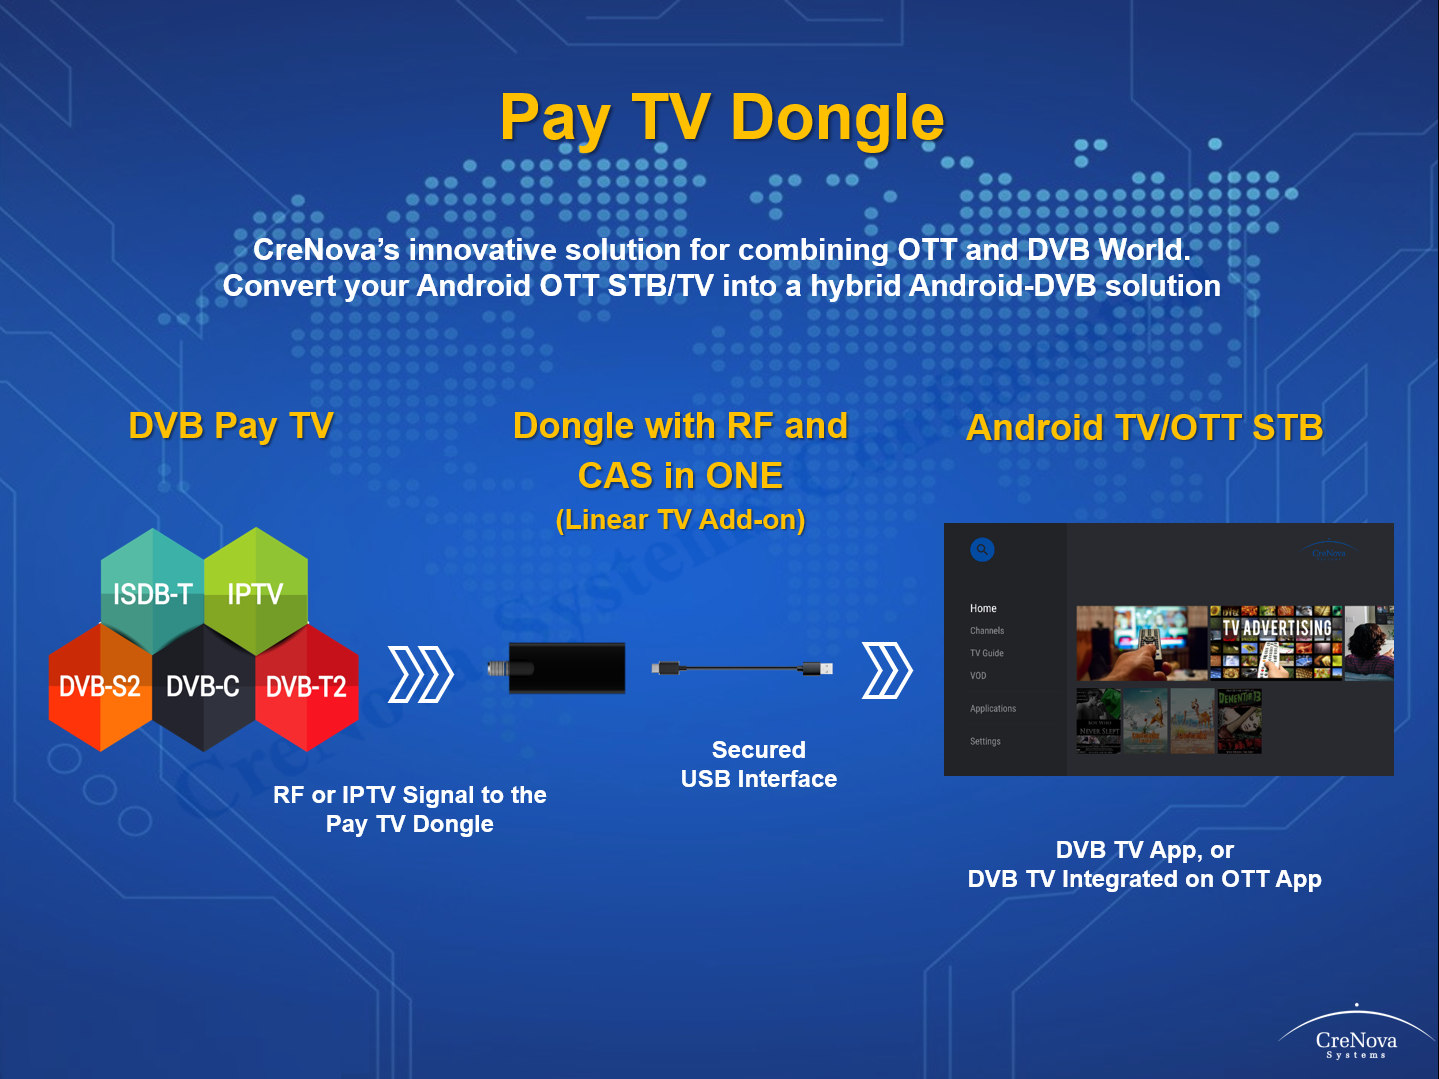 Pay TV Dongle for Android TV